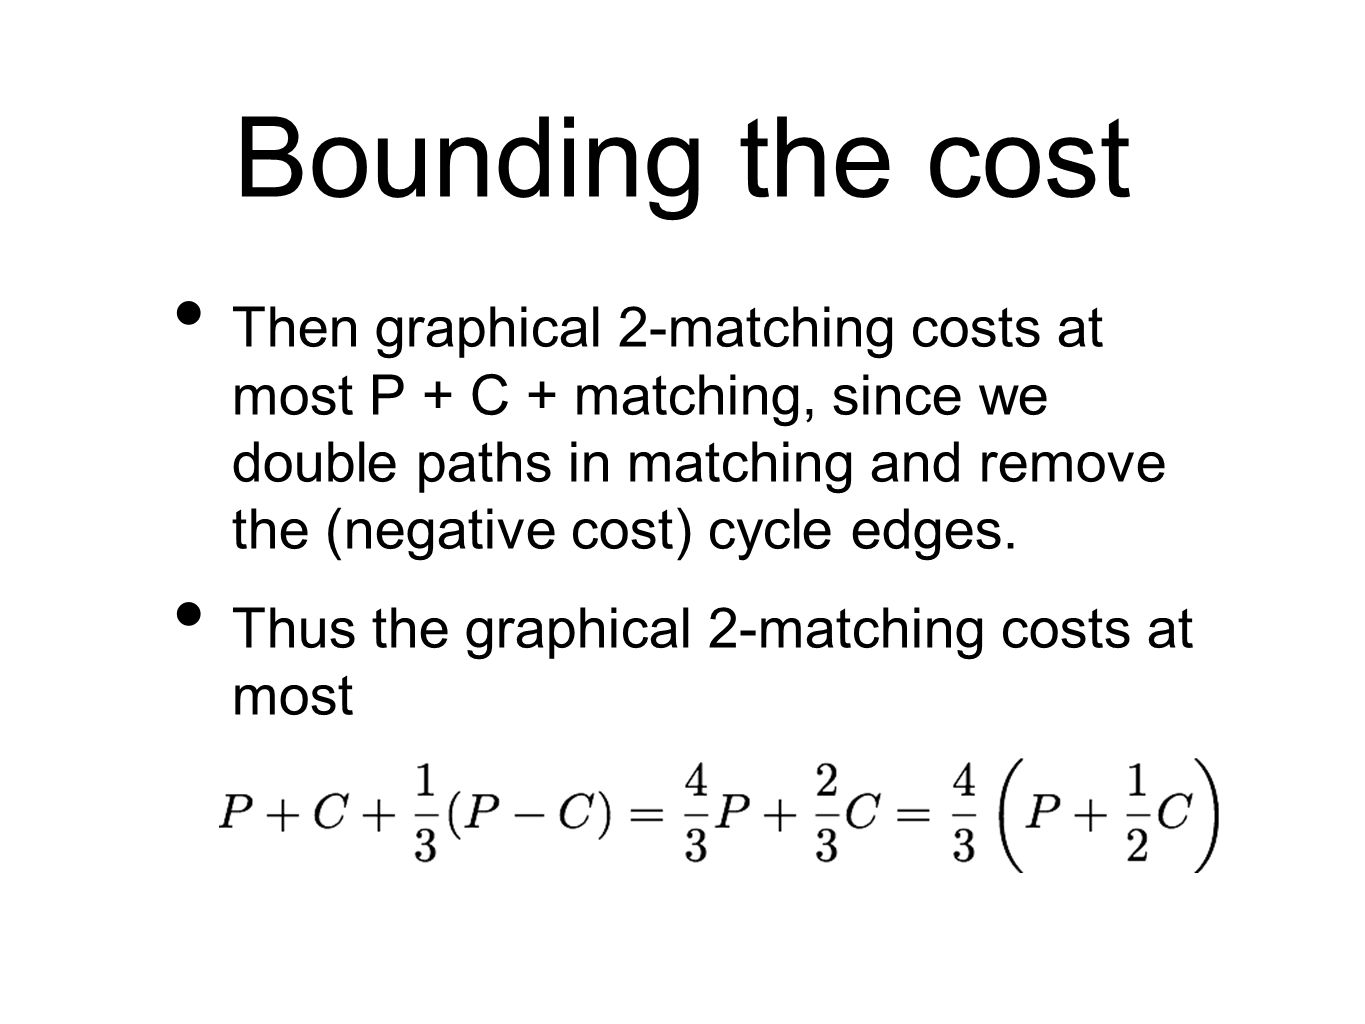 Bounding the cost Then graphical 2-matching costs at most P + C + matching, since we double paths in matching and remove the (negative cost) cycle edges.